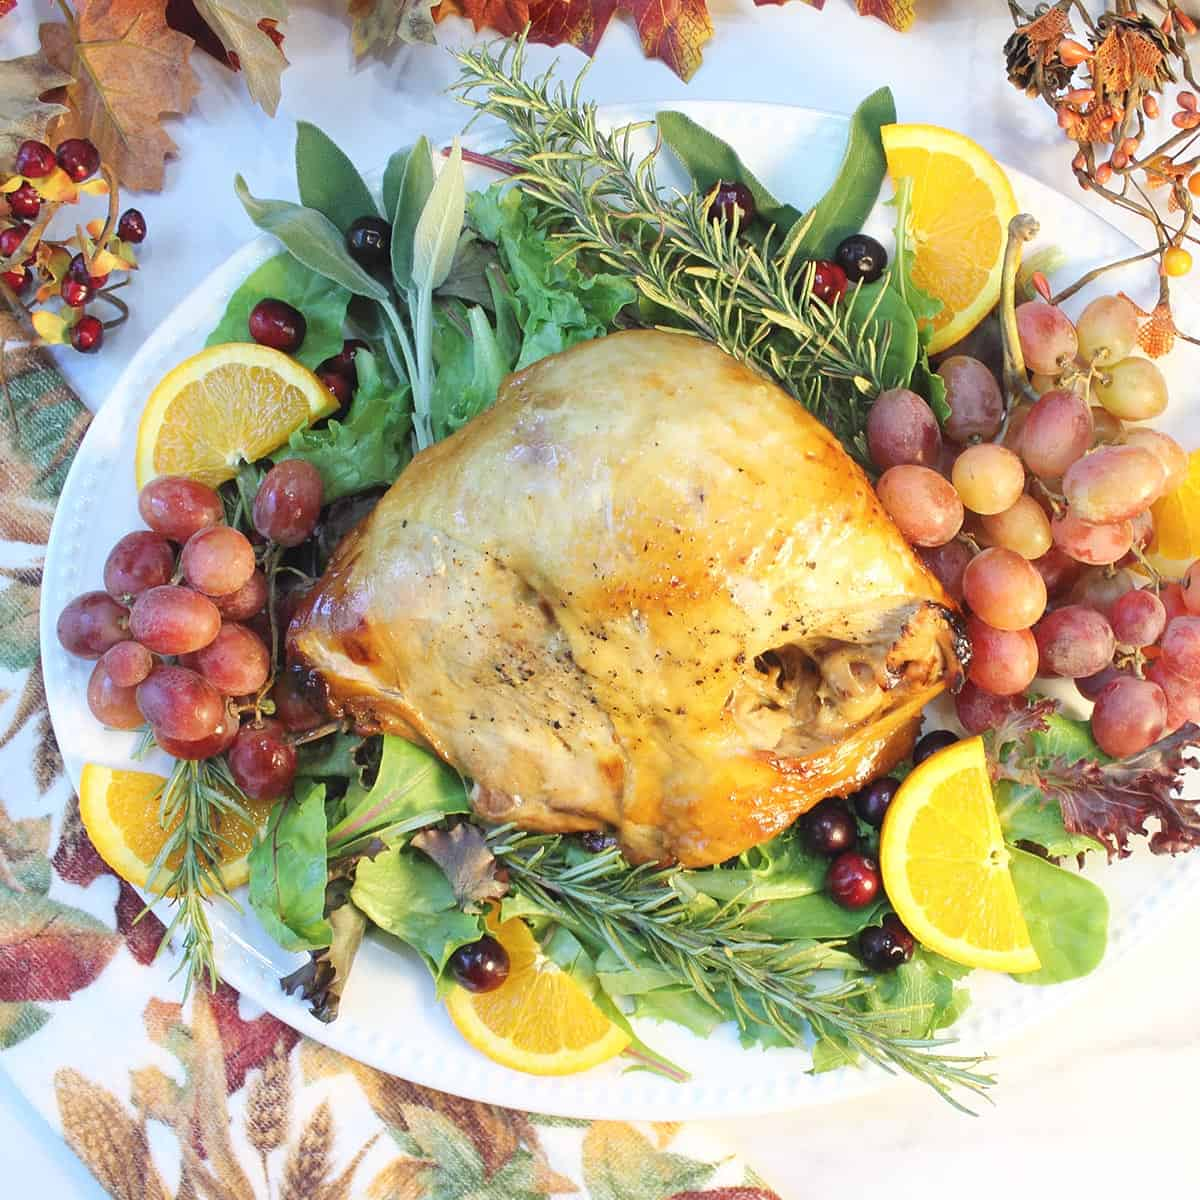 Overhead of roasted turkey breast on white platter decorated with herbs and fruit.